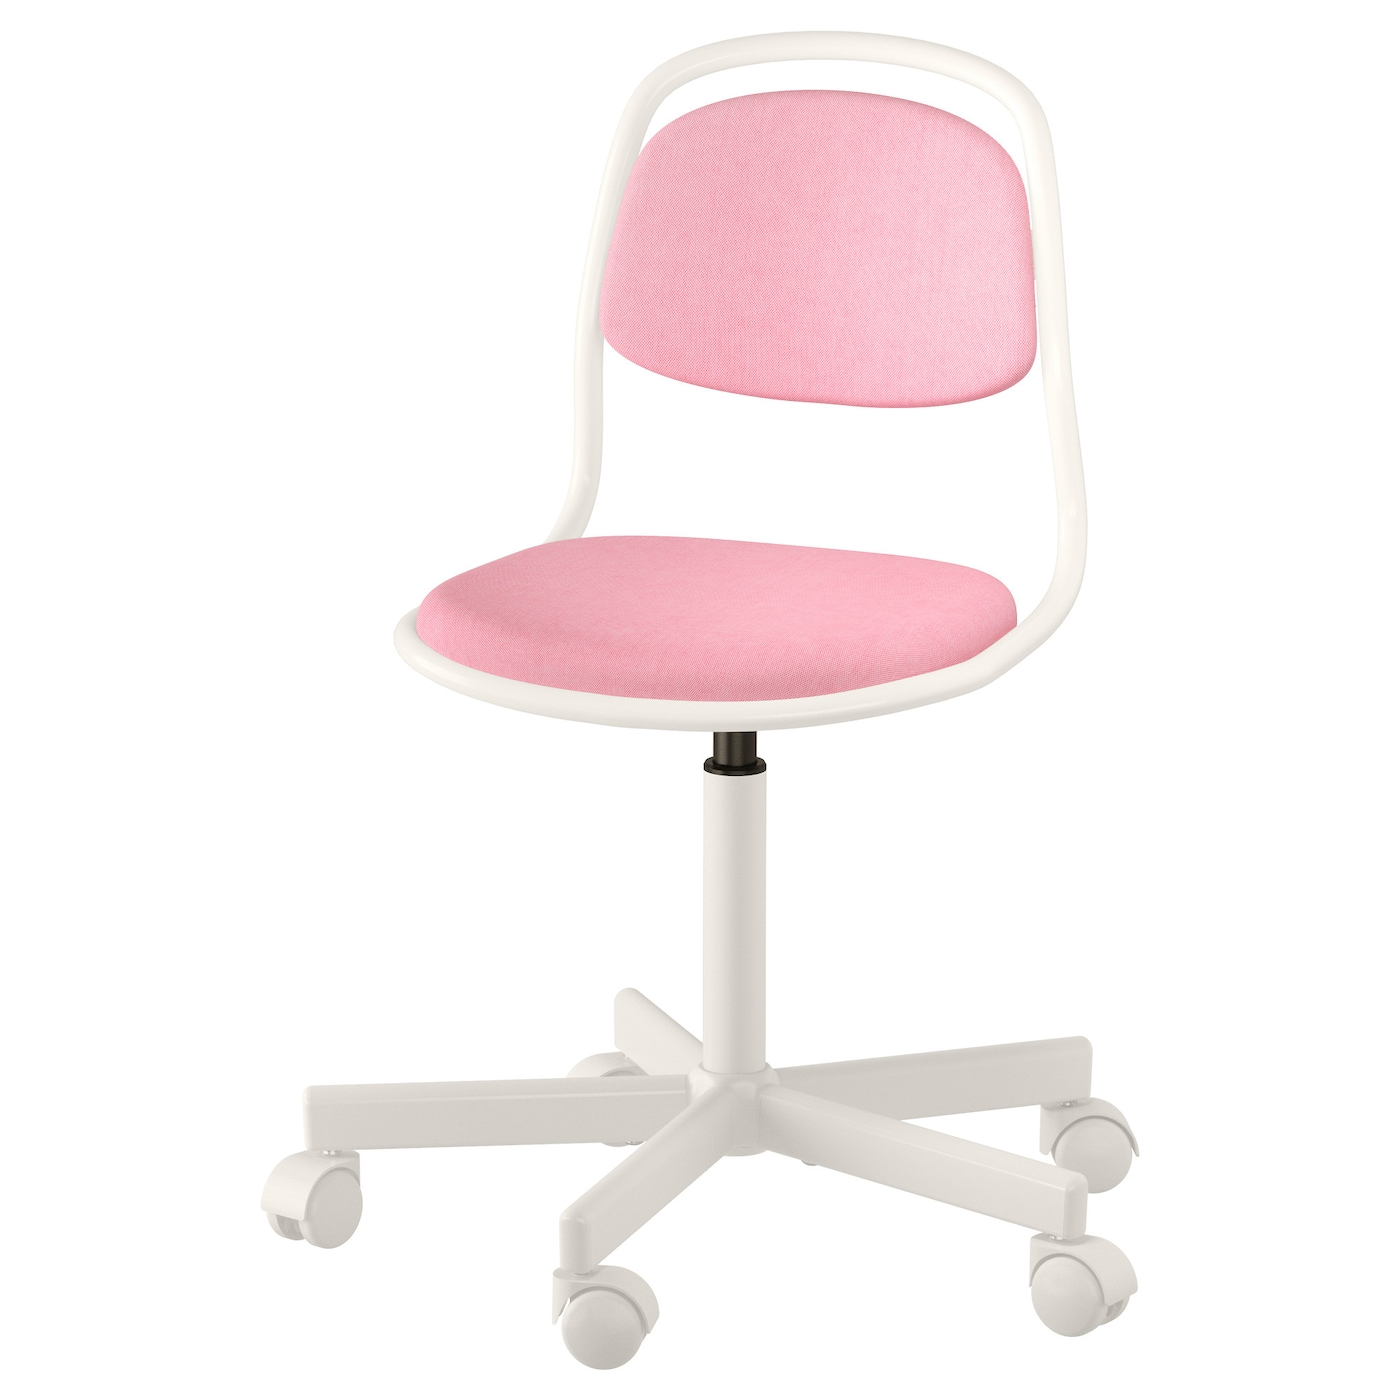 IKEA ÖRFJÄLL children's desk chair You sit comfortably since the chair is adjustable in height.